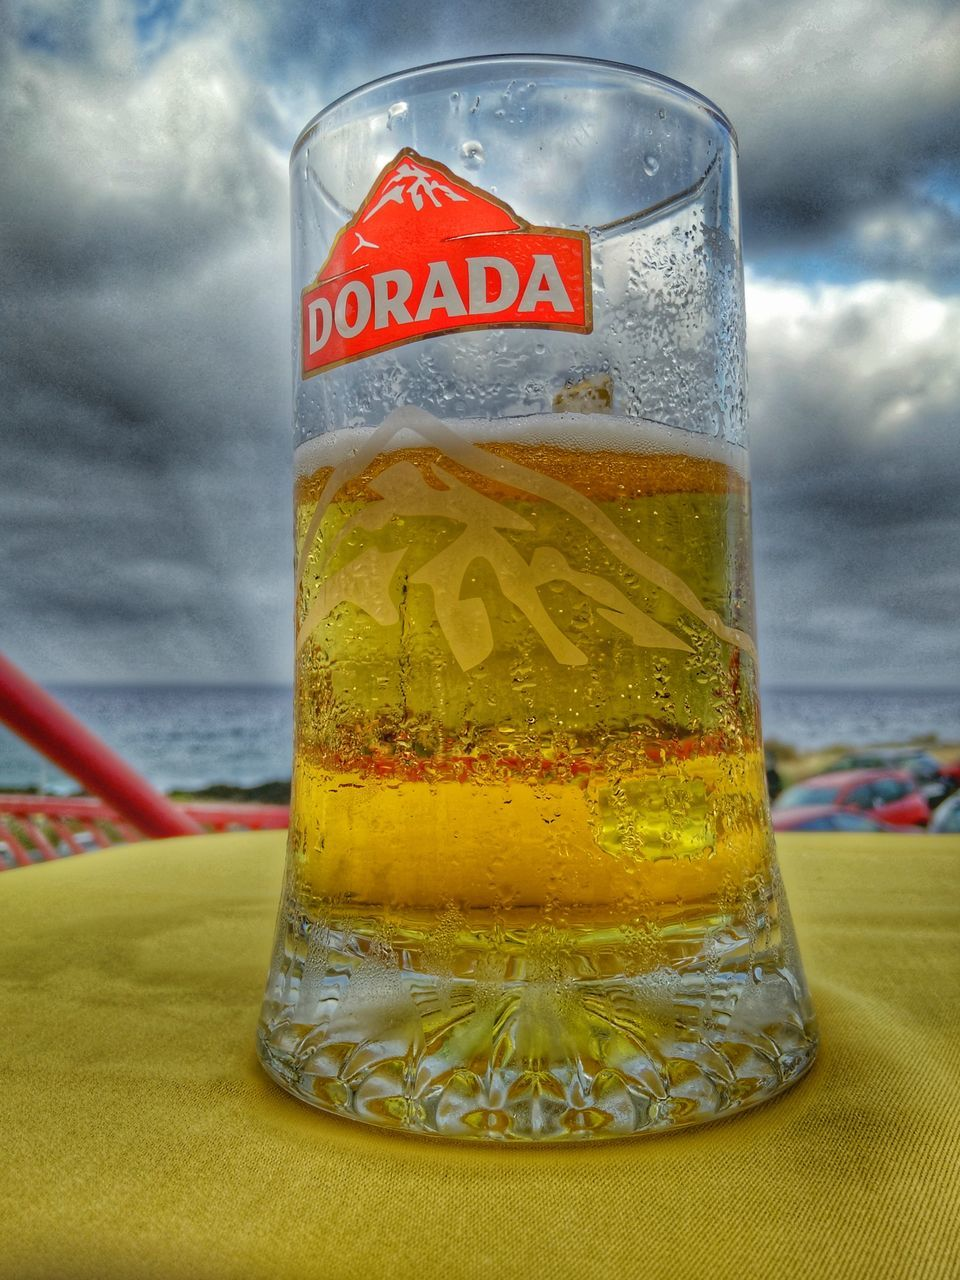 food and drink, drink, freshness, still life, refreshment, text, no people, close-up, table, drinking glass, yellow, jar, cloud - sky, food, day, indoors, healthy eating, water, sky